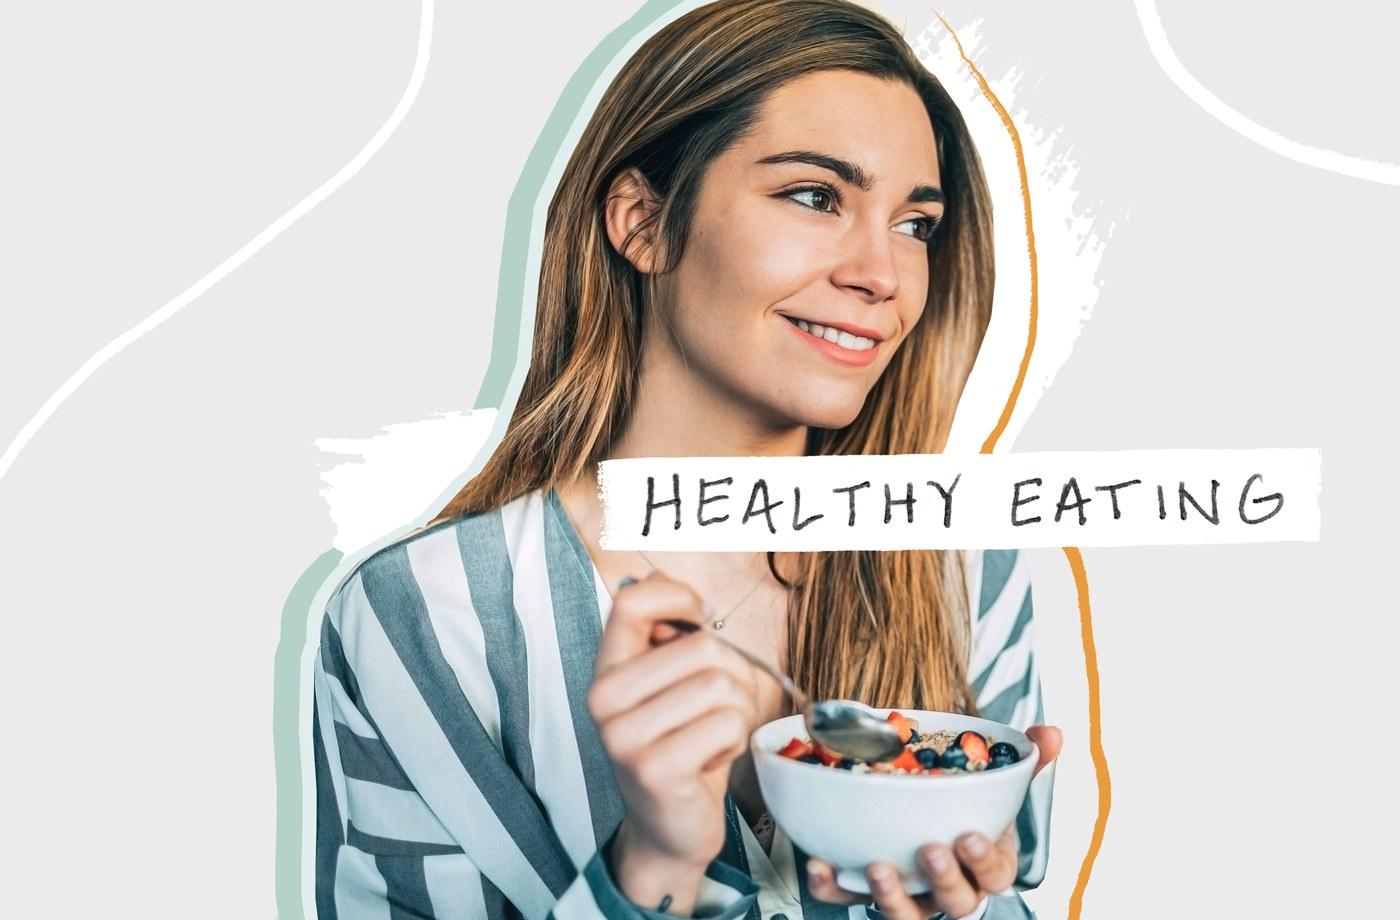 Sophia Roe will inspire your plate with healthy options